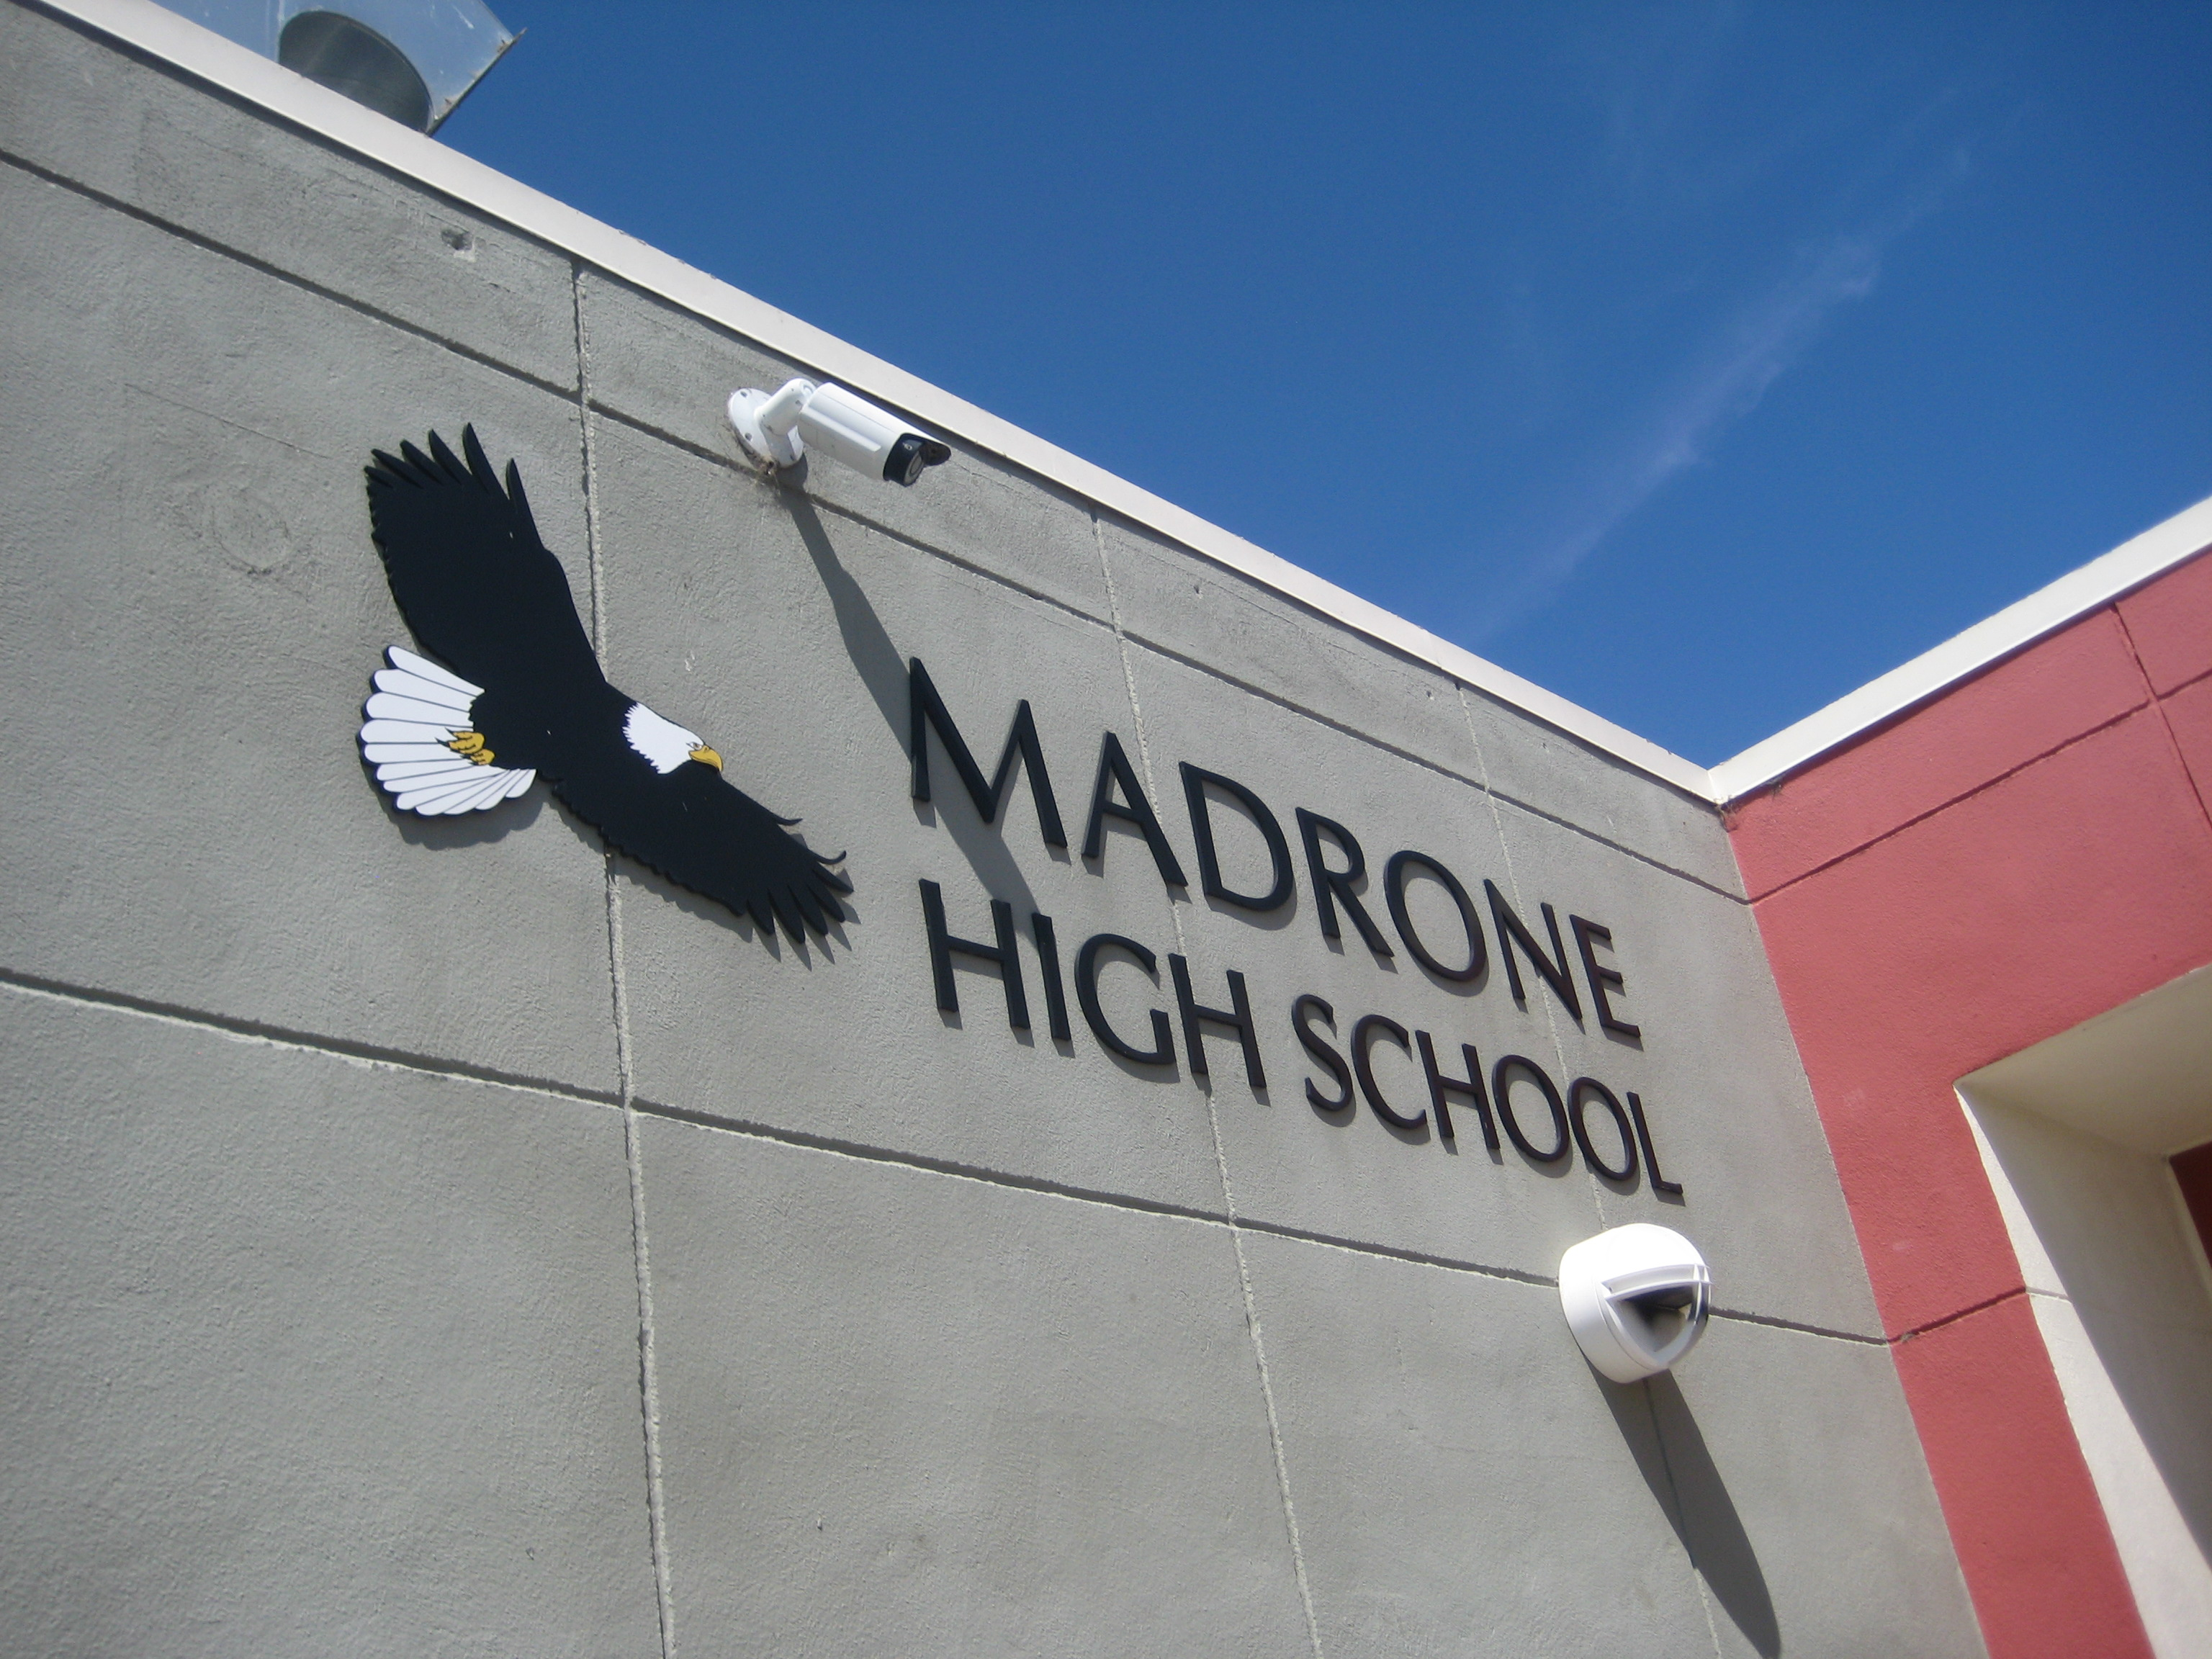 Madrone High School